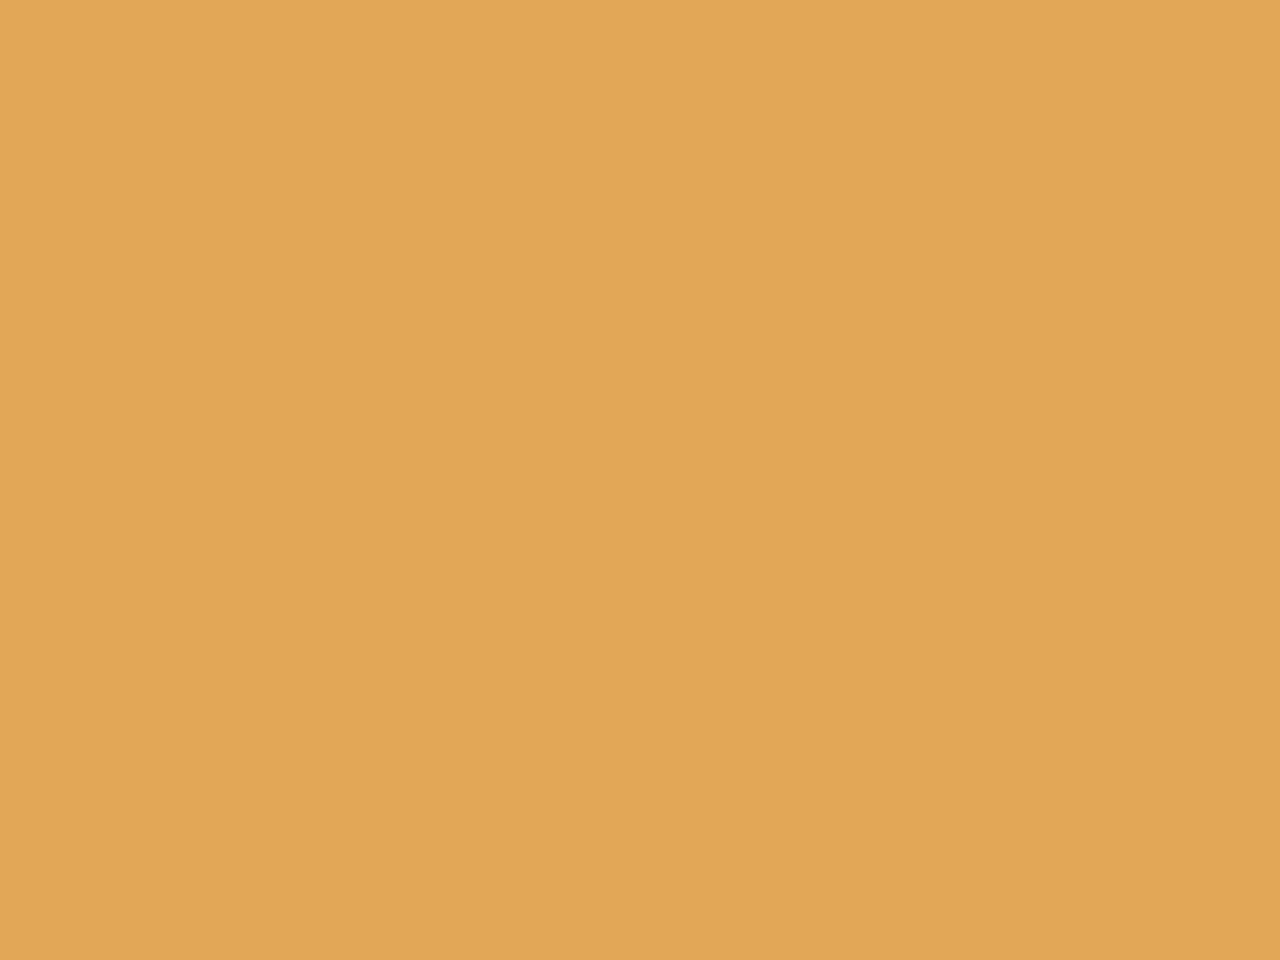 1280x960 Indian Yellow Solid Color Background